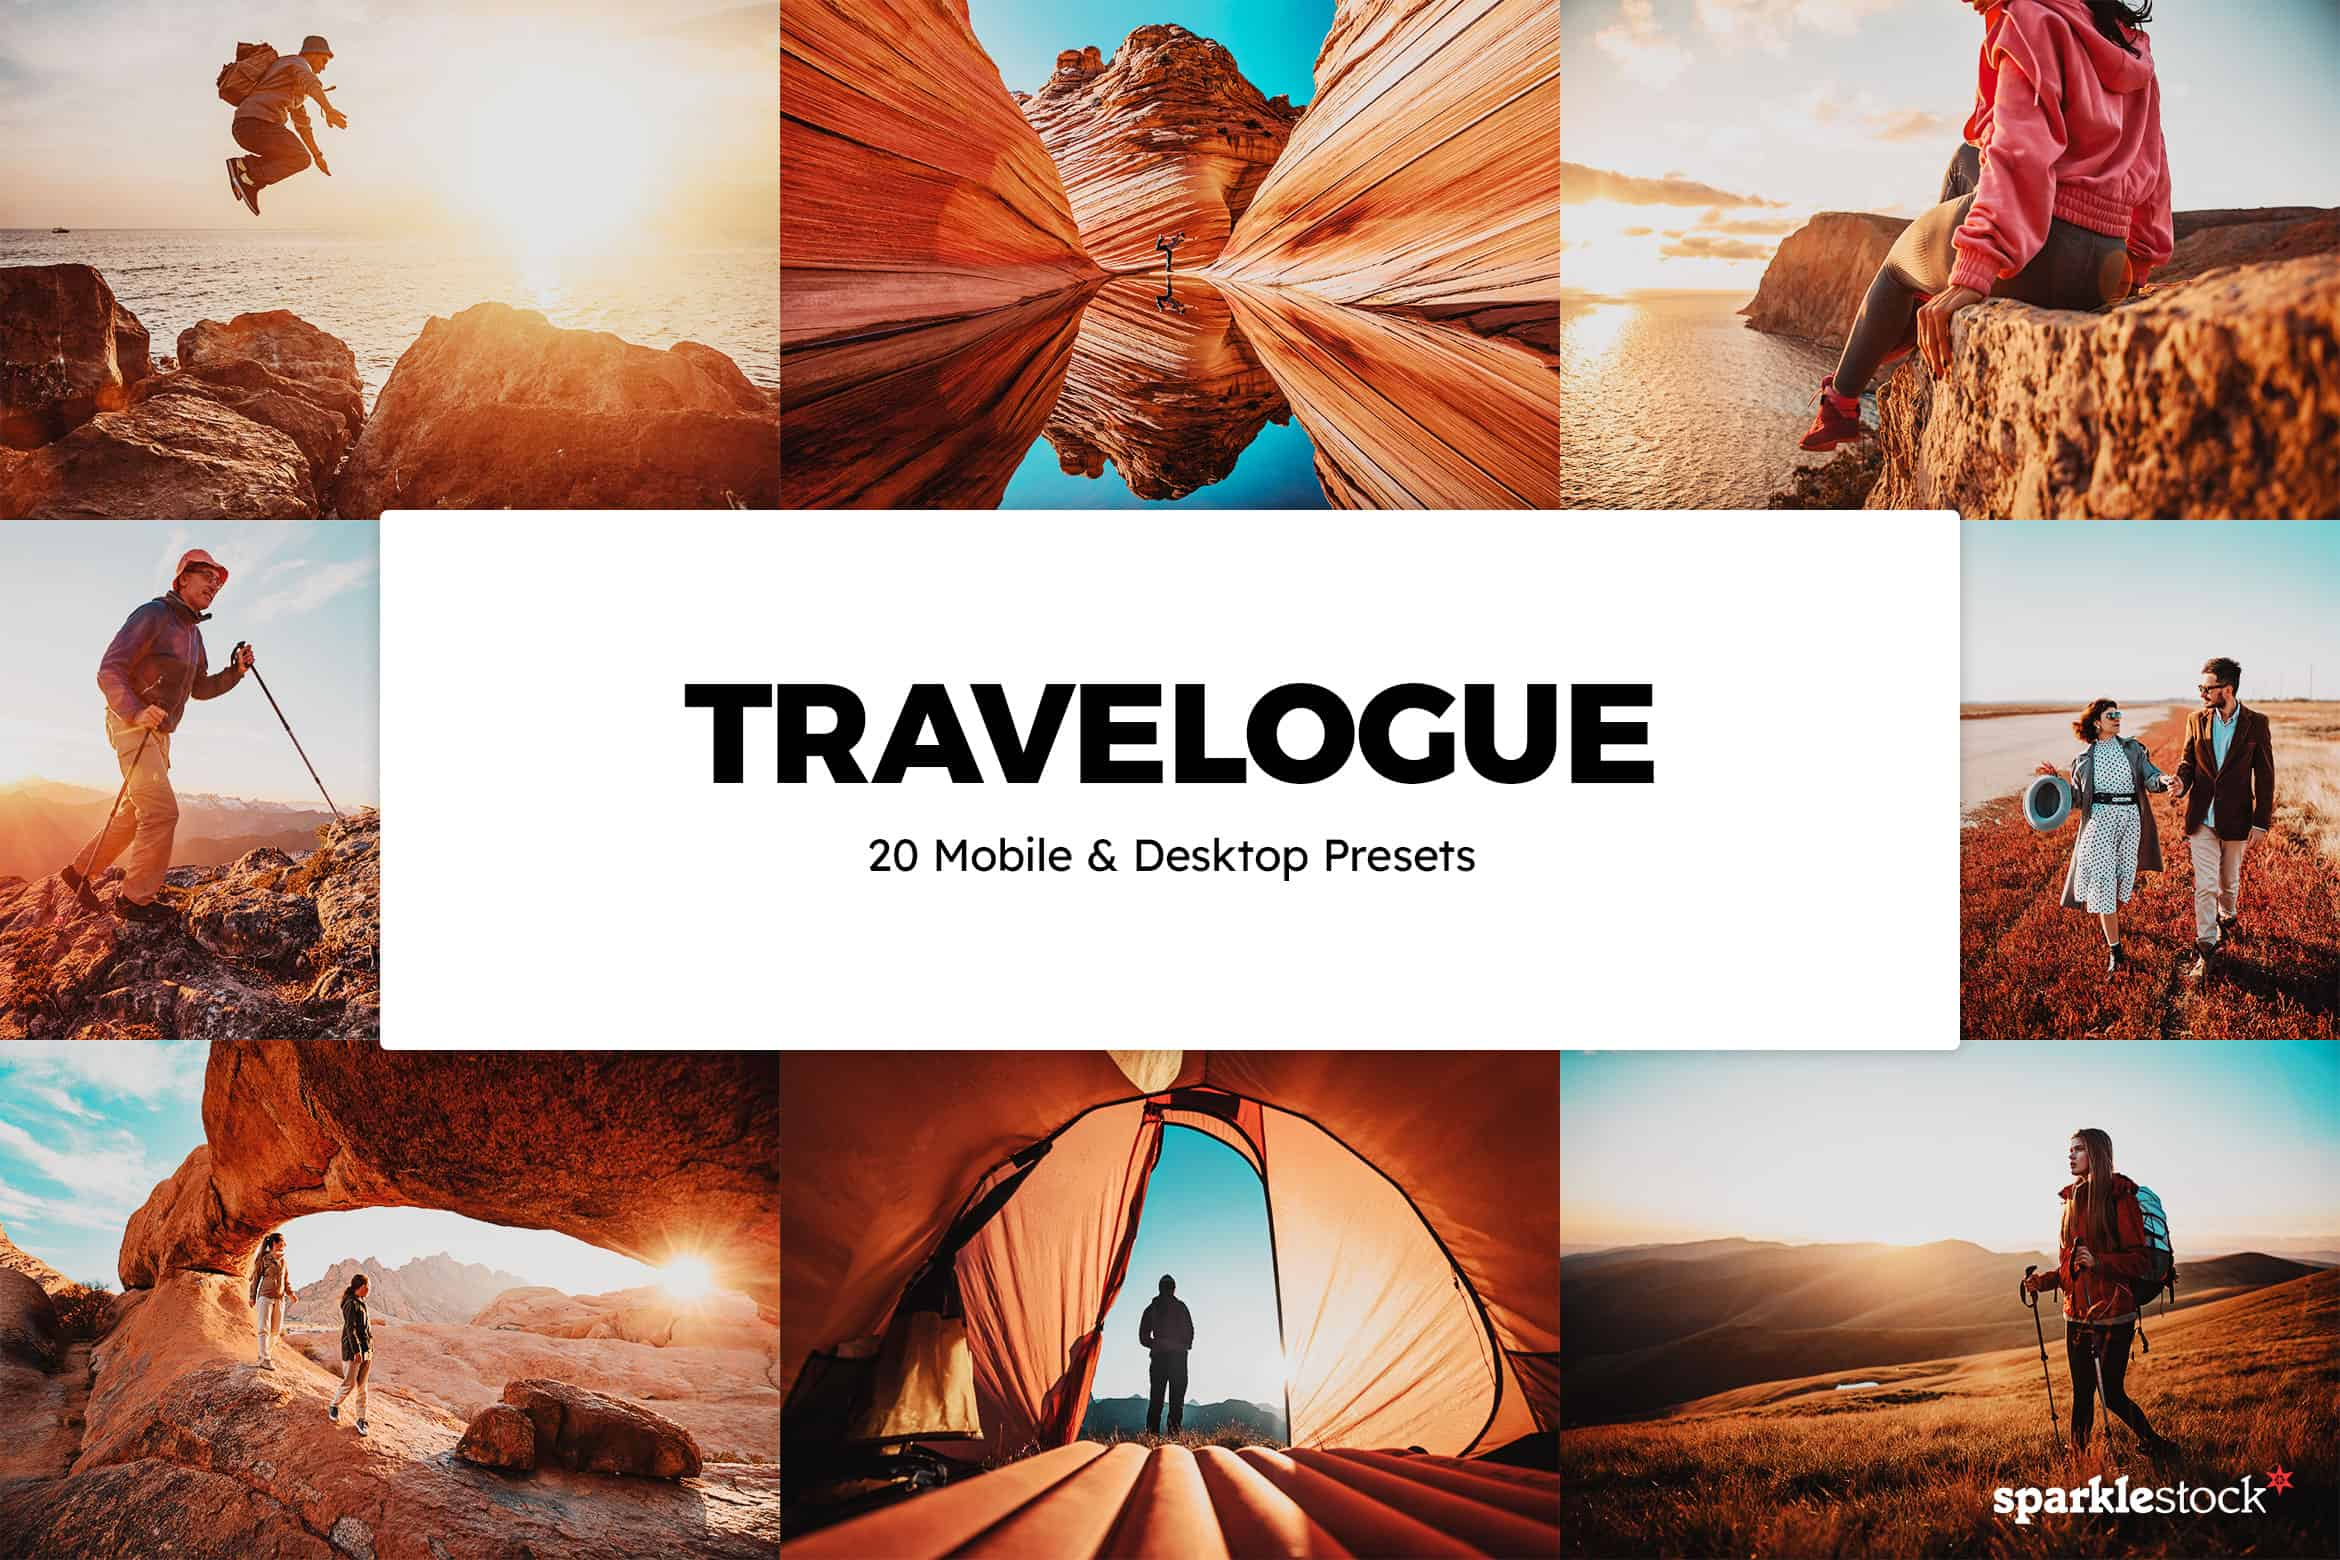 8 Free Travelogue Lightroom Presets and LUTs